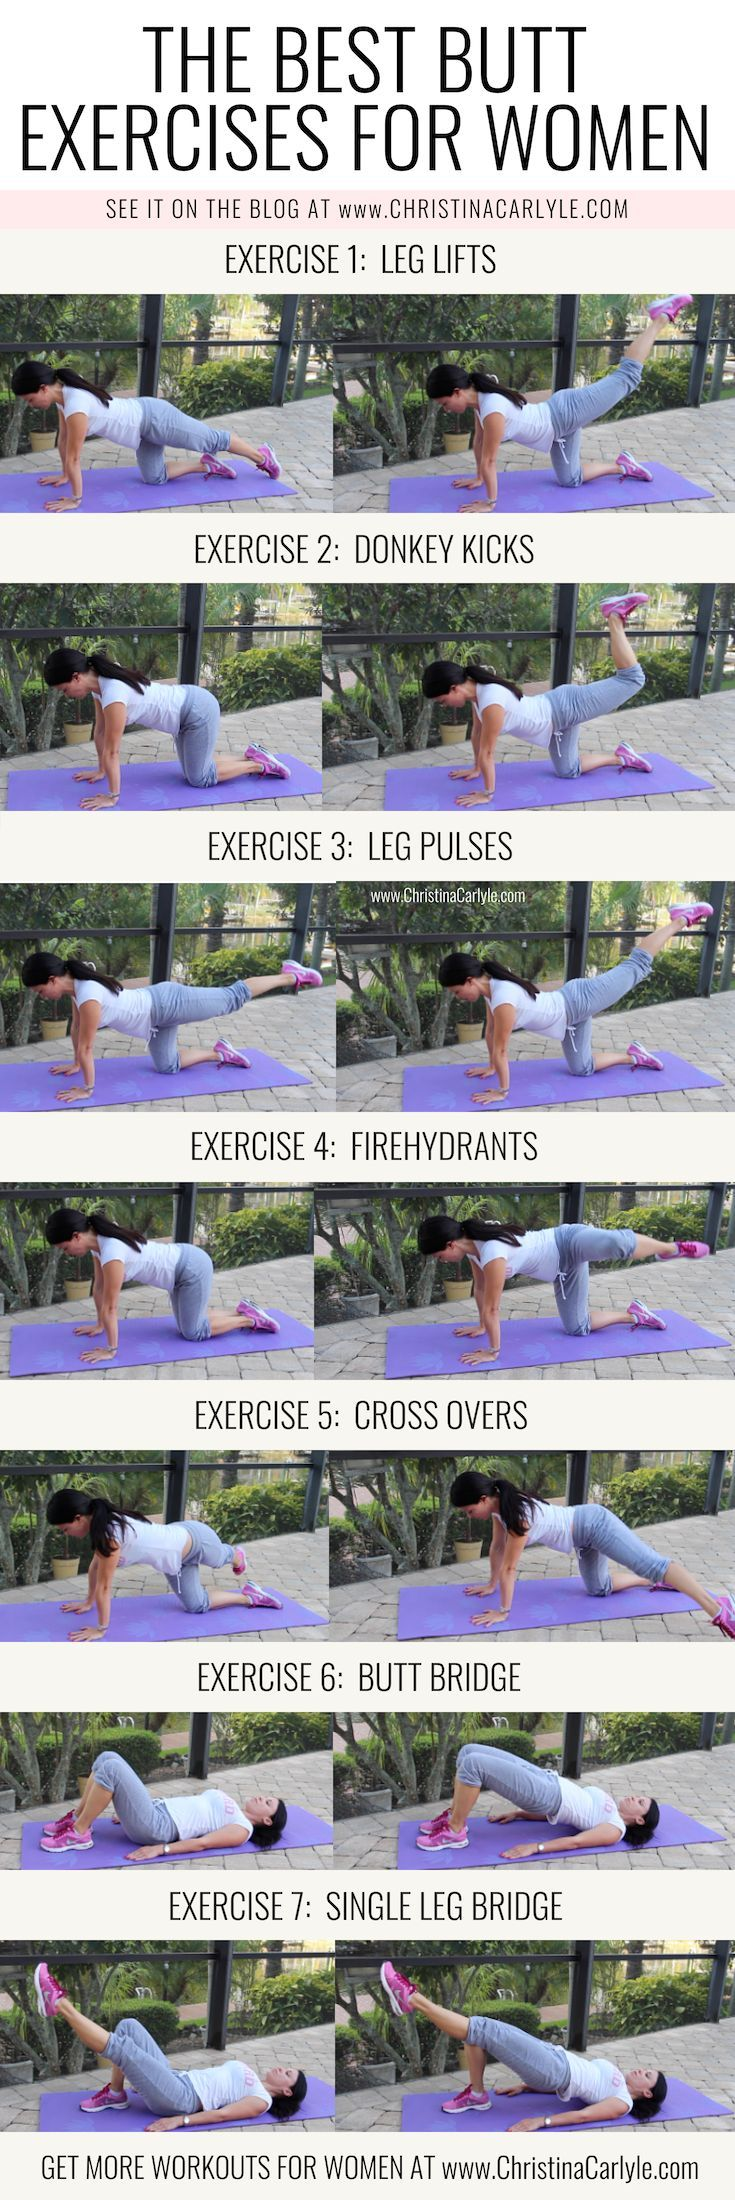 The Best Booty Building Butt Exercises that Arent Squats #fitness #exercises